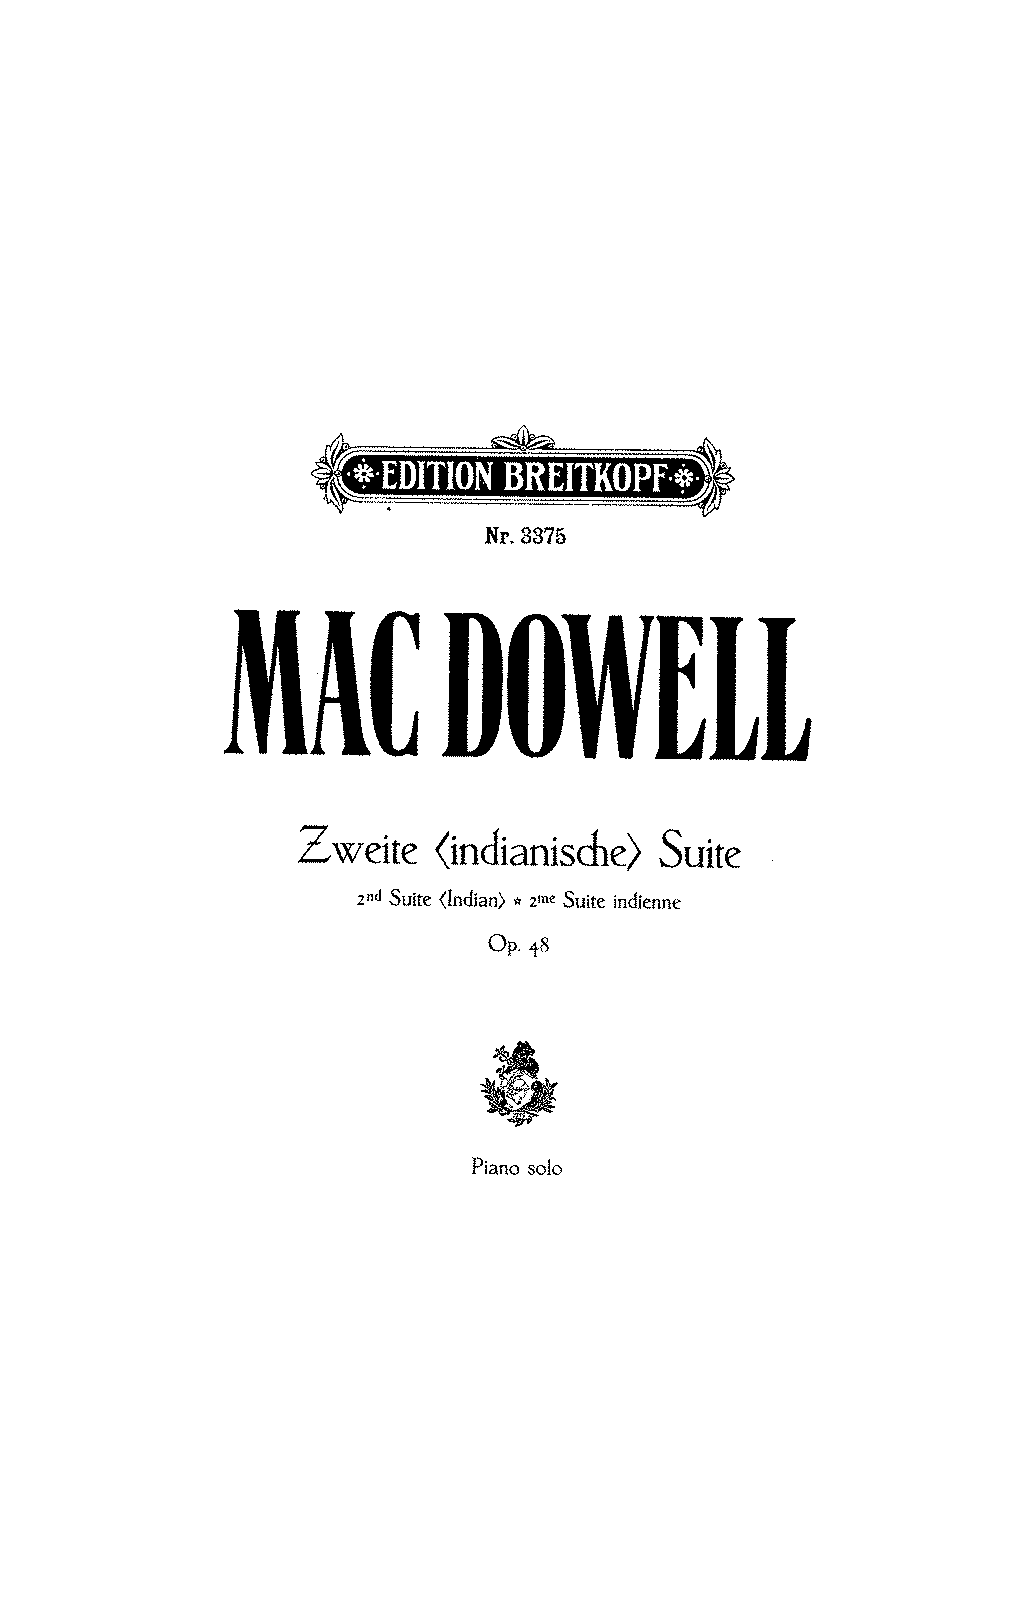 MacDowell - Suite No. 2 (Indian) Op. 48 (piano).pdf